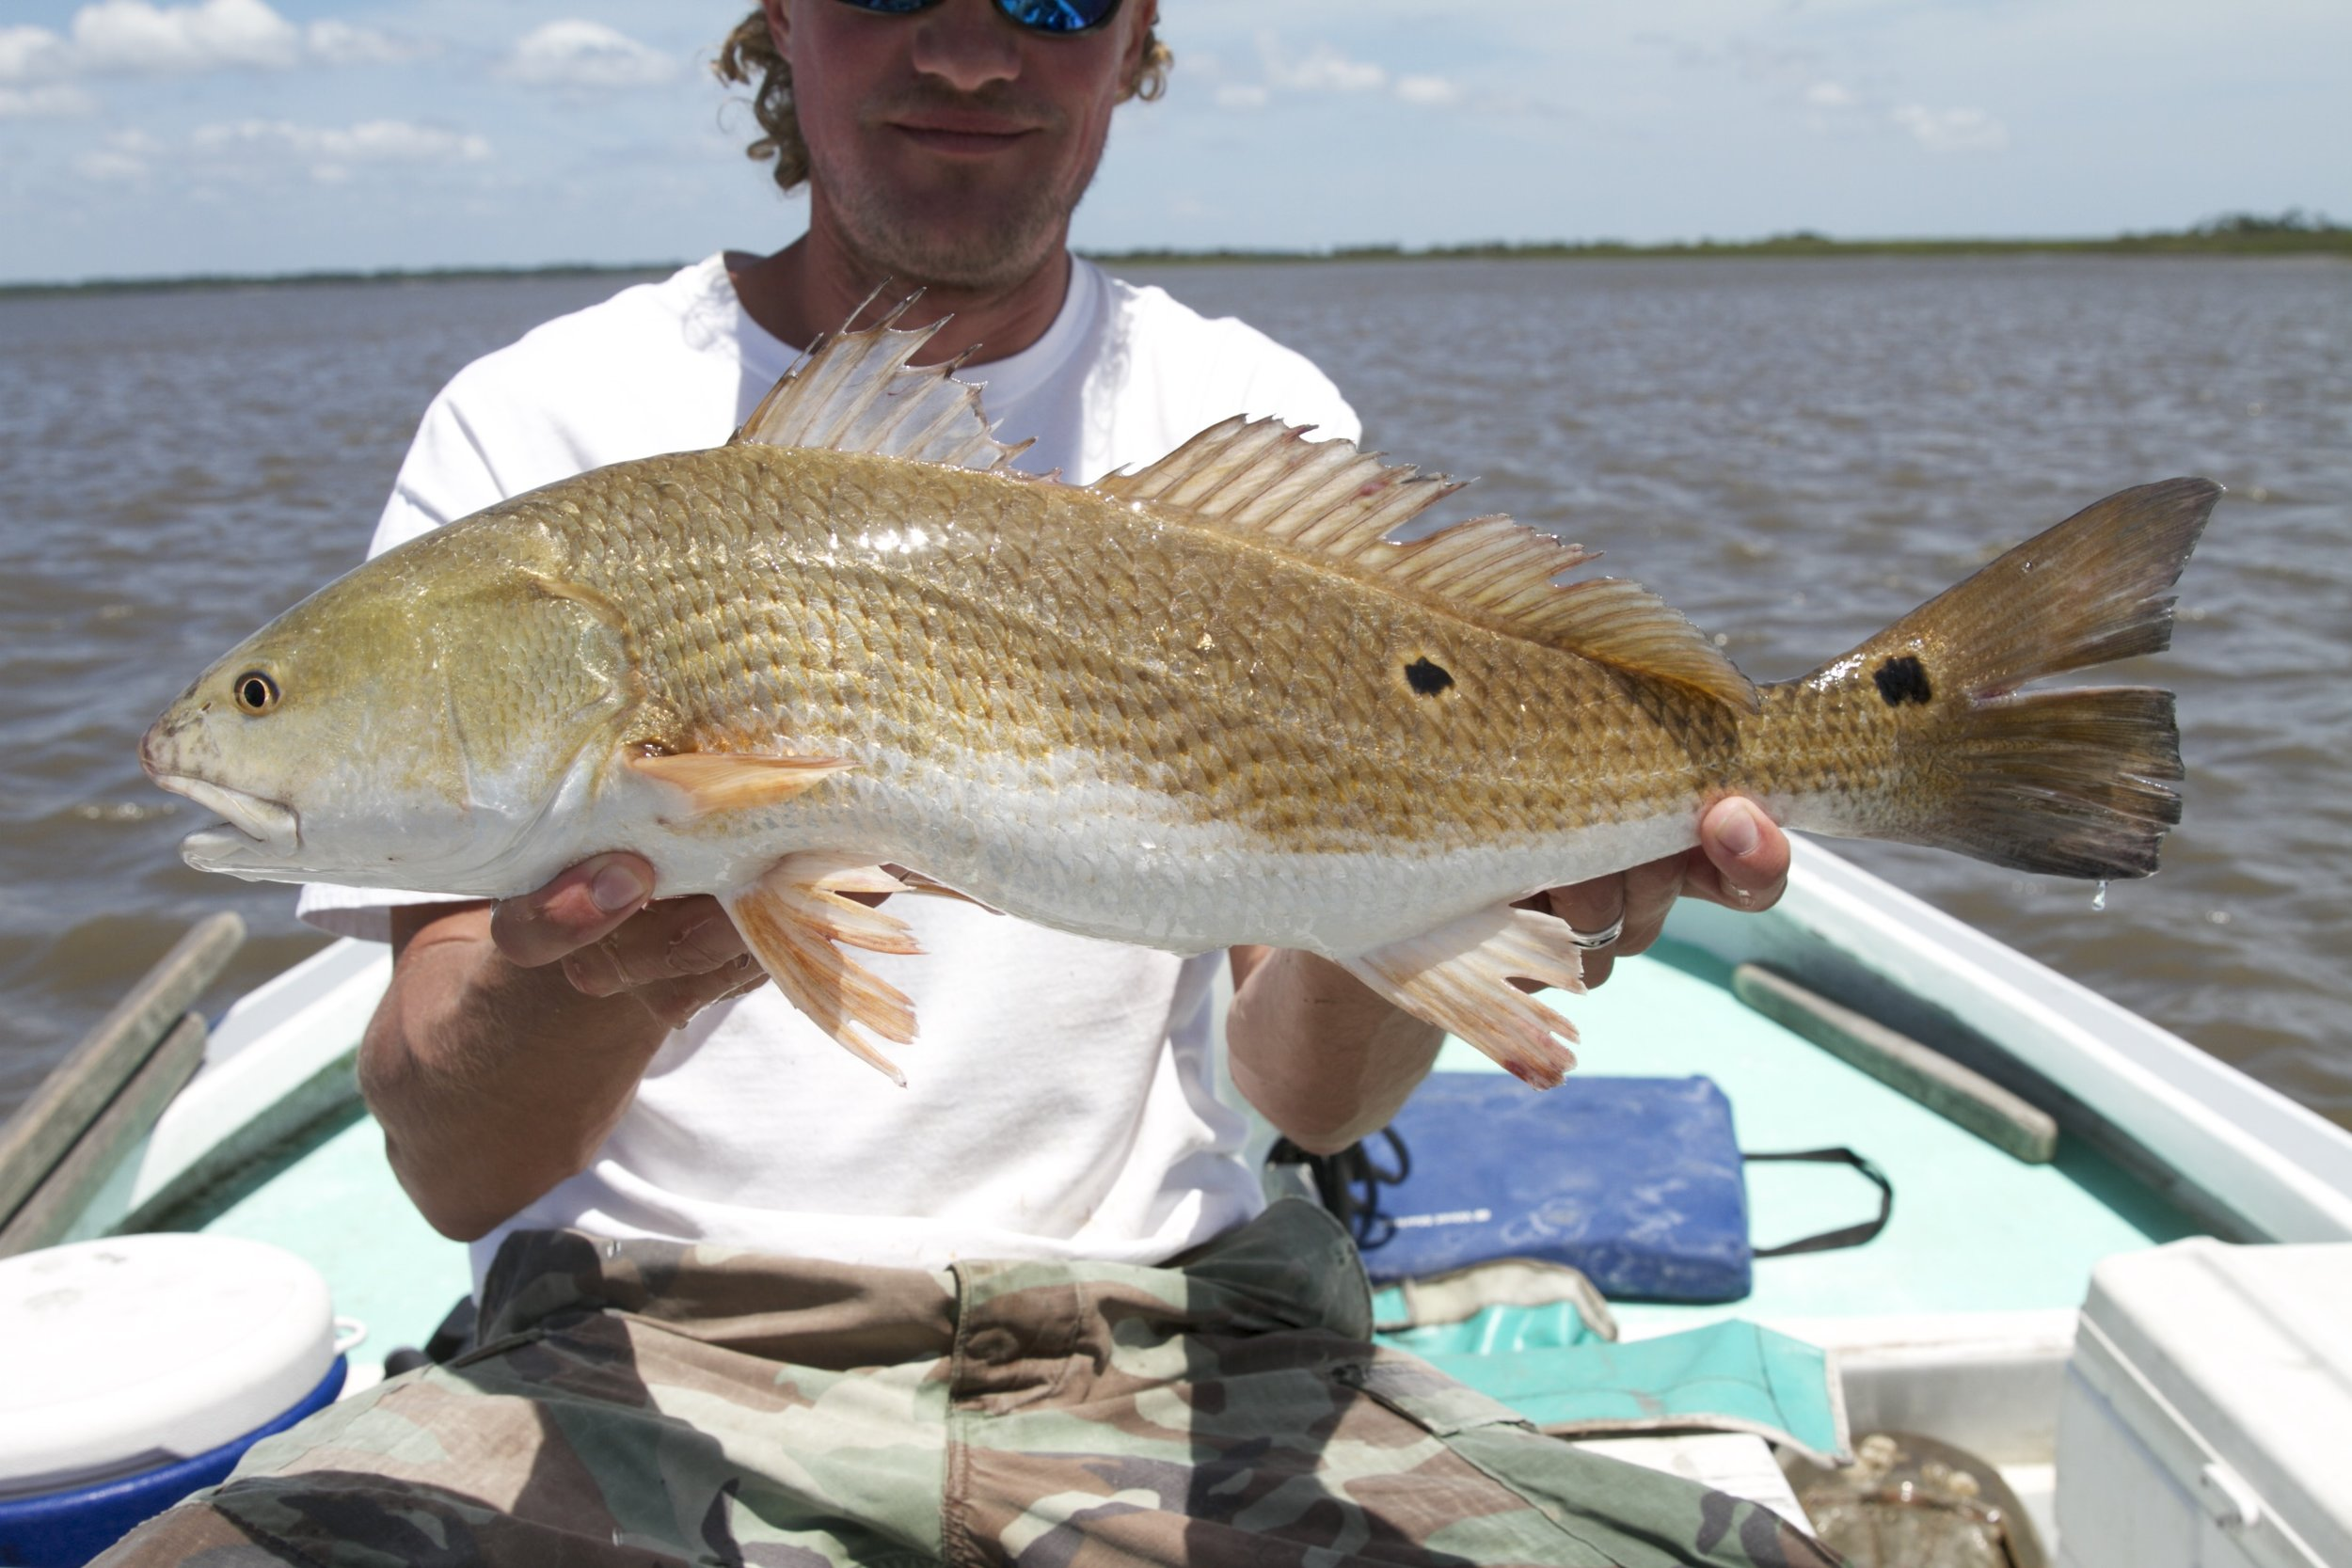 SCDNR biologists caught, measured, and later tagged this red drum in a routine trammel net survey in the ACE Basin. (Photo:Ken Winikur/Ken Winikur Productions)